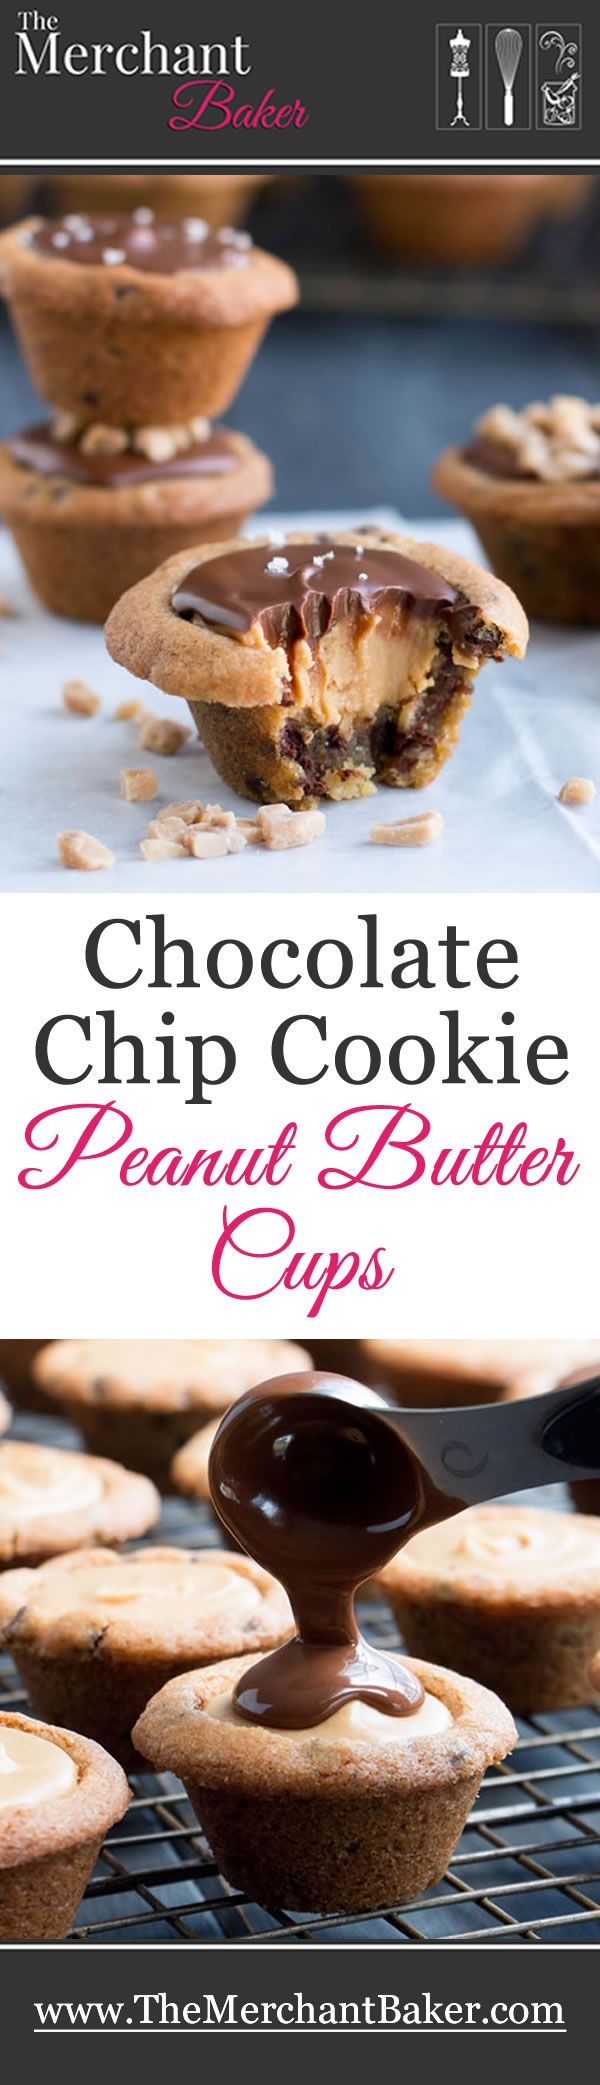 Chocolate Chip Cookie Peanut Butter Cups. Chocolate chip cookie cups filled with a creamy peanut butter filling and topped with melted chocolate. #cookiecupsrecipe #chocolatechip #peanutbutter #cup #cookies